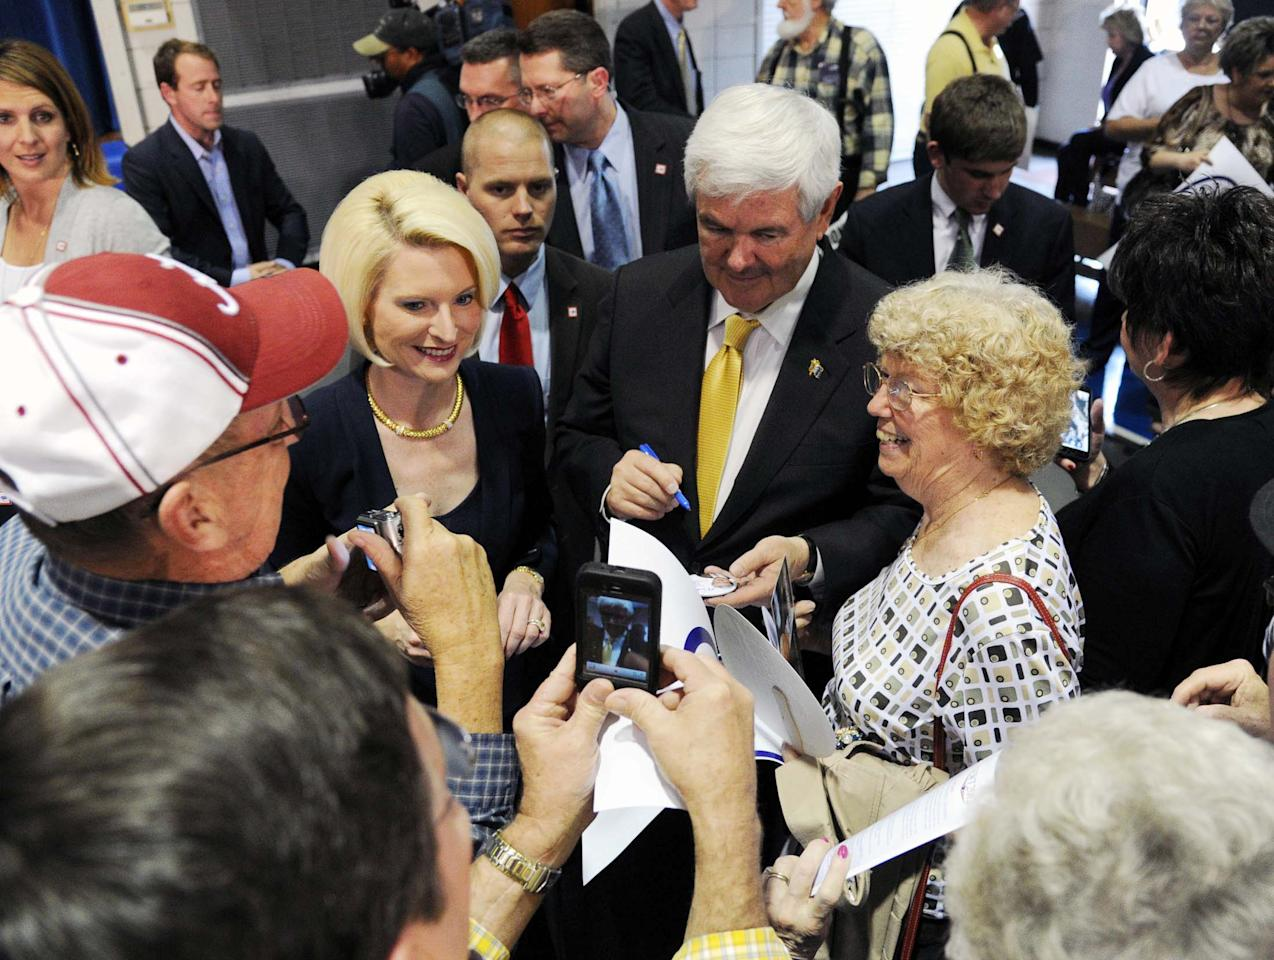 Republican presidential candidate Newt Gingrich and wife Callista sign autographs for supporters after a rally at the Pell City Civic Center Wednesday, March 7, 2012 in Pell City, Ala. (AP Photo/The Birmingham News, Hal Yeager) MAGS OUT